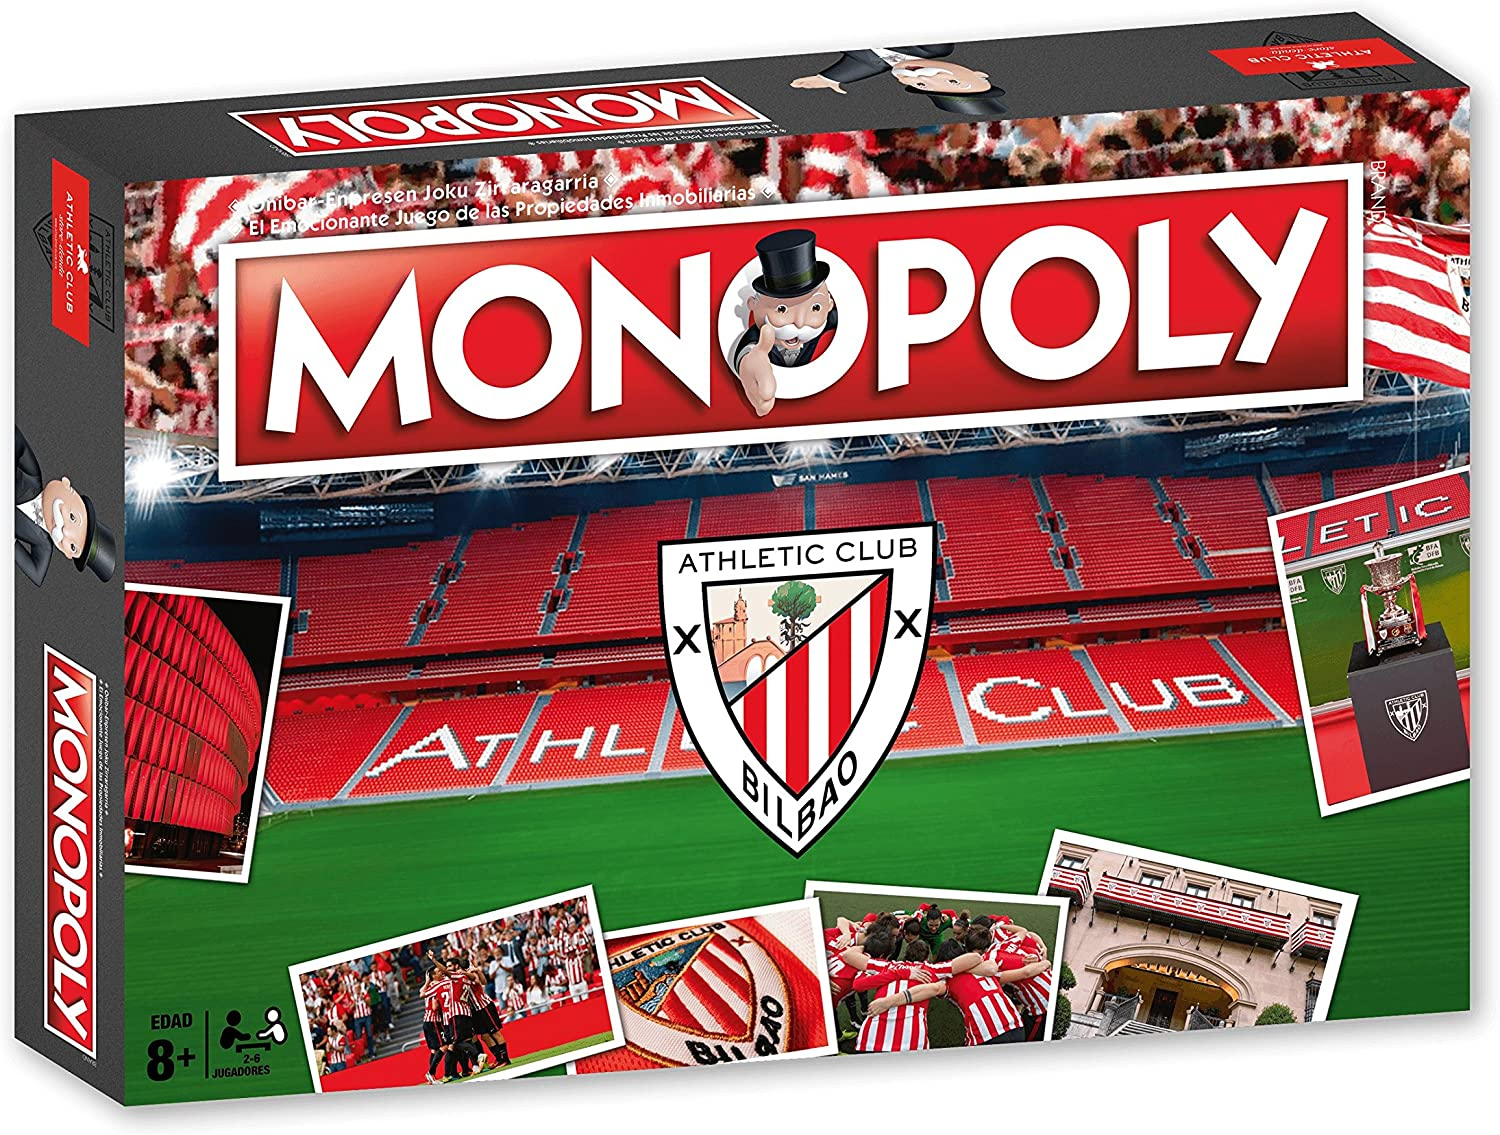 Athletic Club Bilbao Monopoly Athlétic Club (81120), Multicolor ...